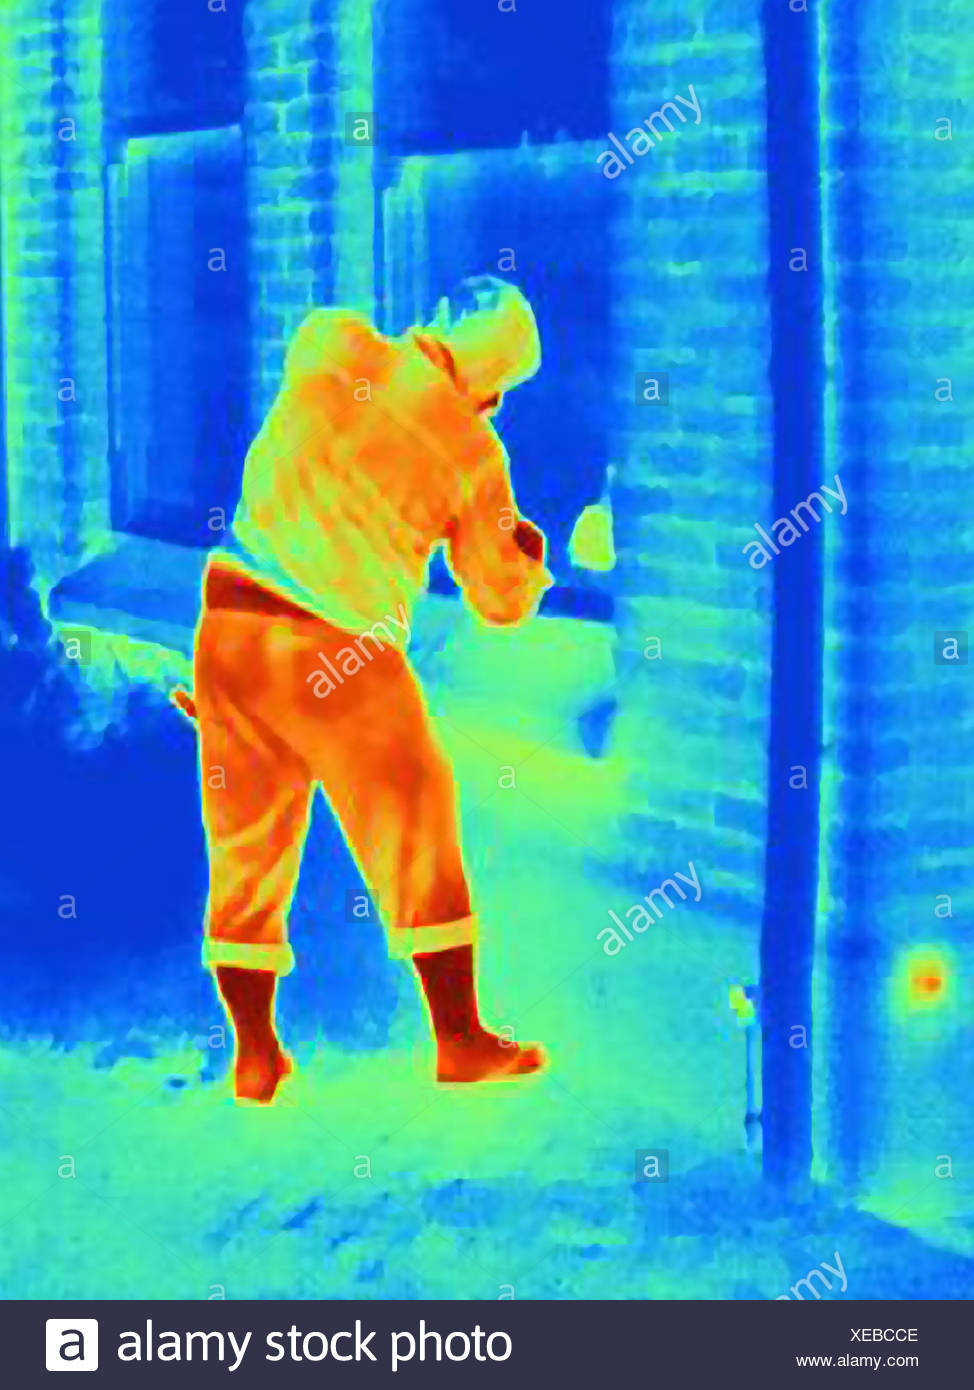 Thermal photograph of a burglar breaking into a house - Stock Image